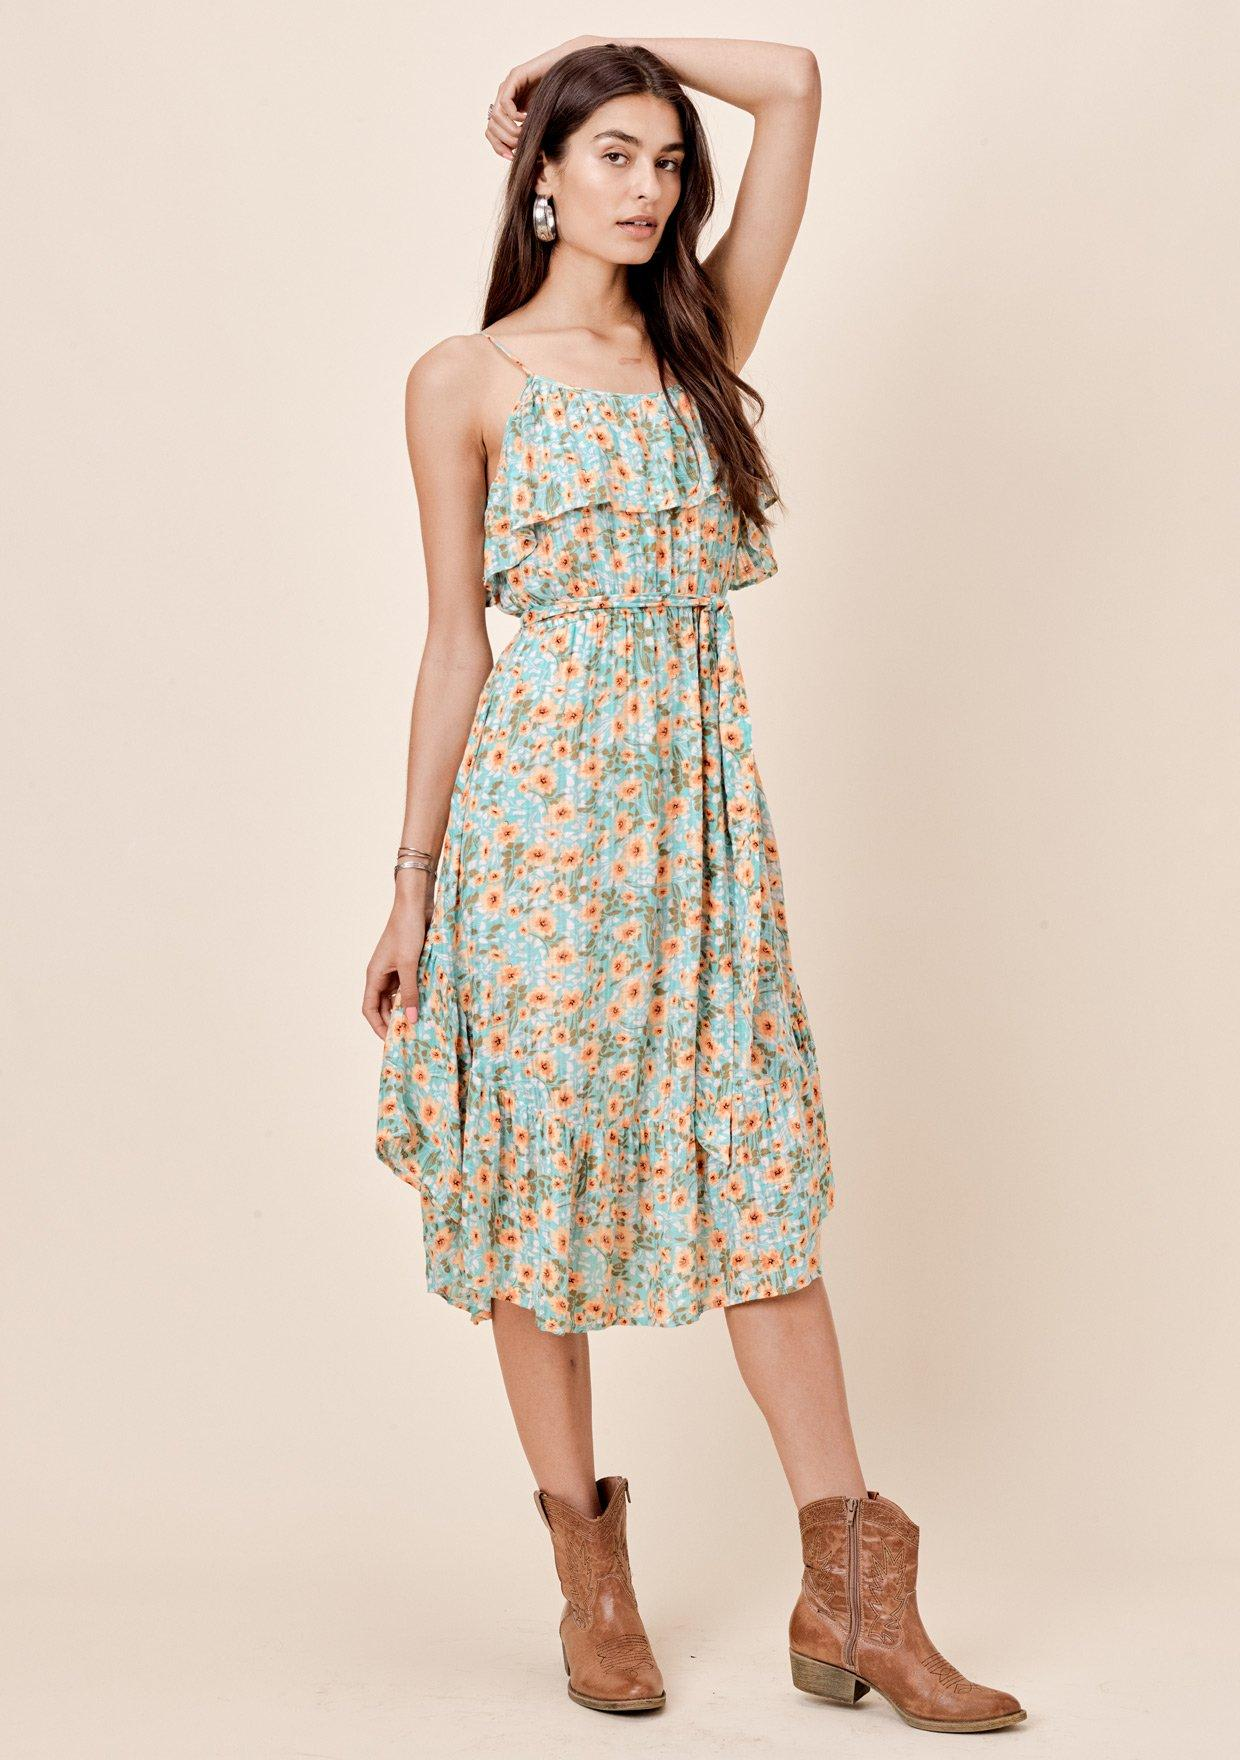 [Color: Aqua/Peach] Lovestitch floral printed midi dress with flounce top, self belt and ruffled bottom.